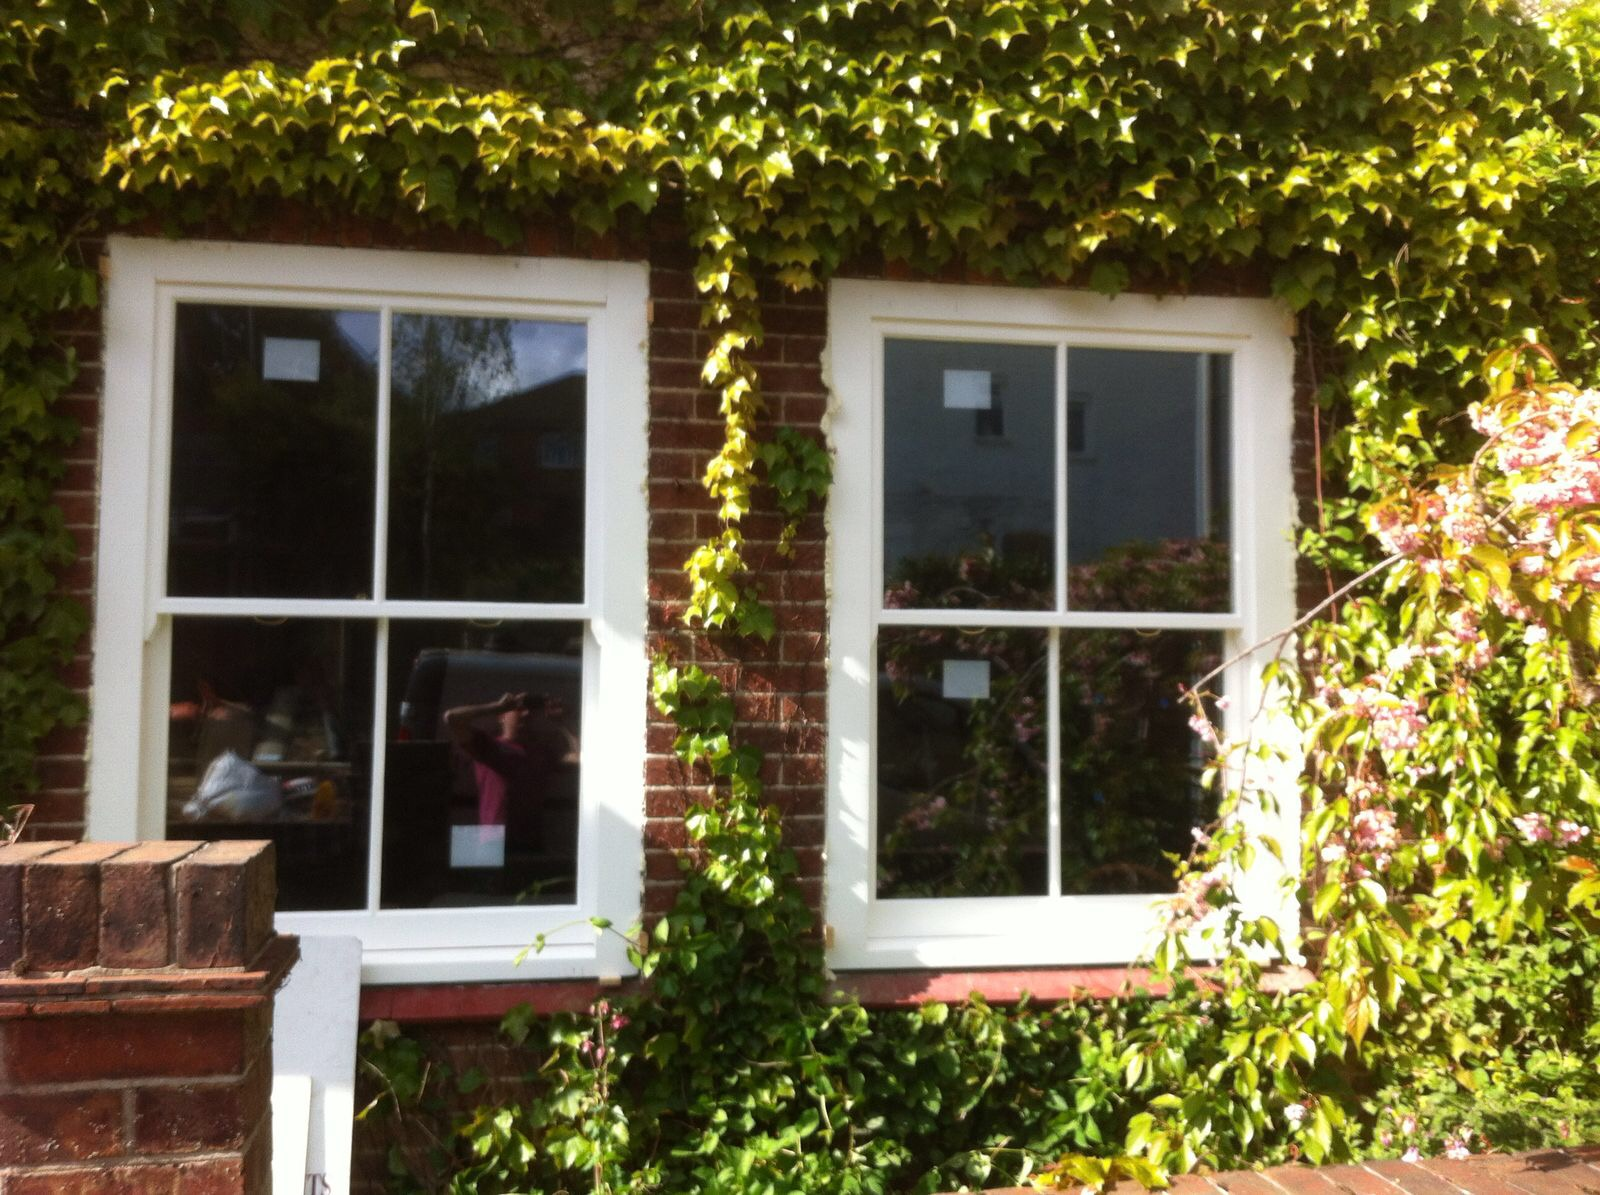 Box frame window - Tunbridge Wells